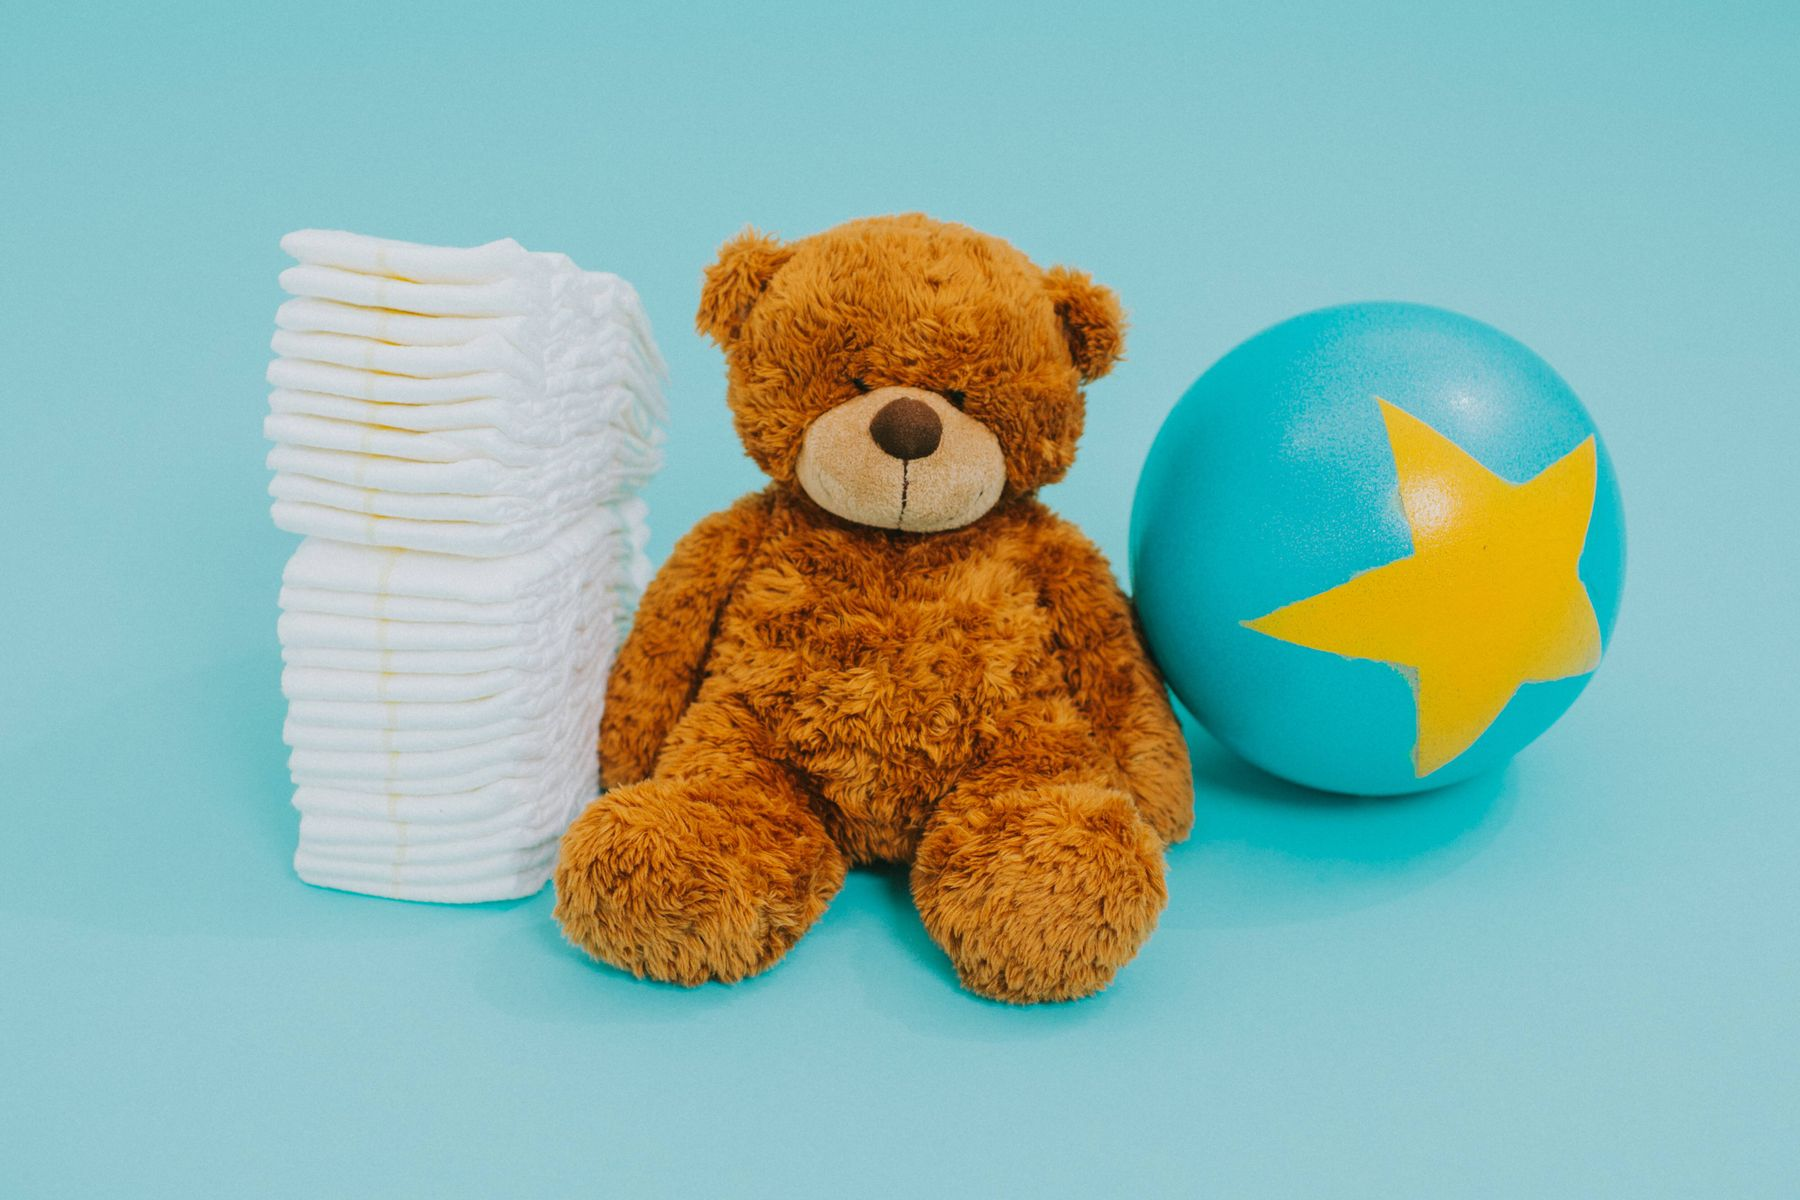 teddy bear sitting around nappies and a plastic ball